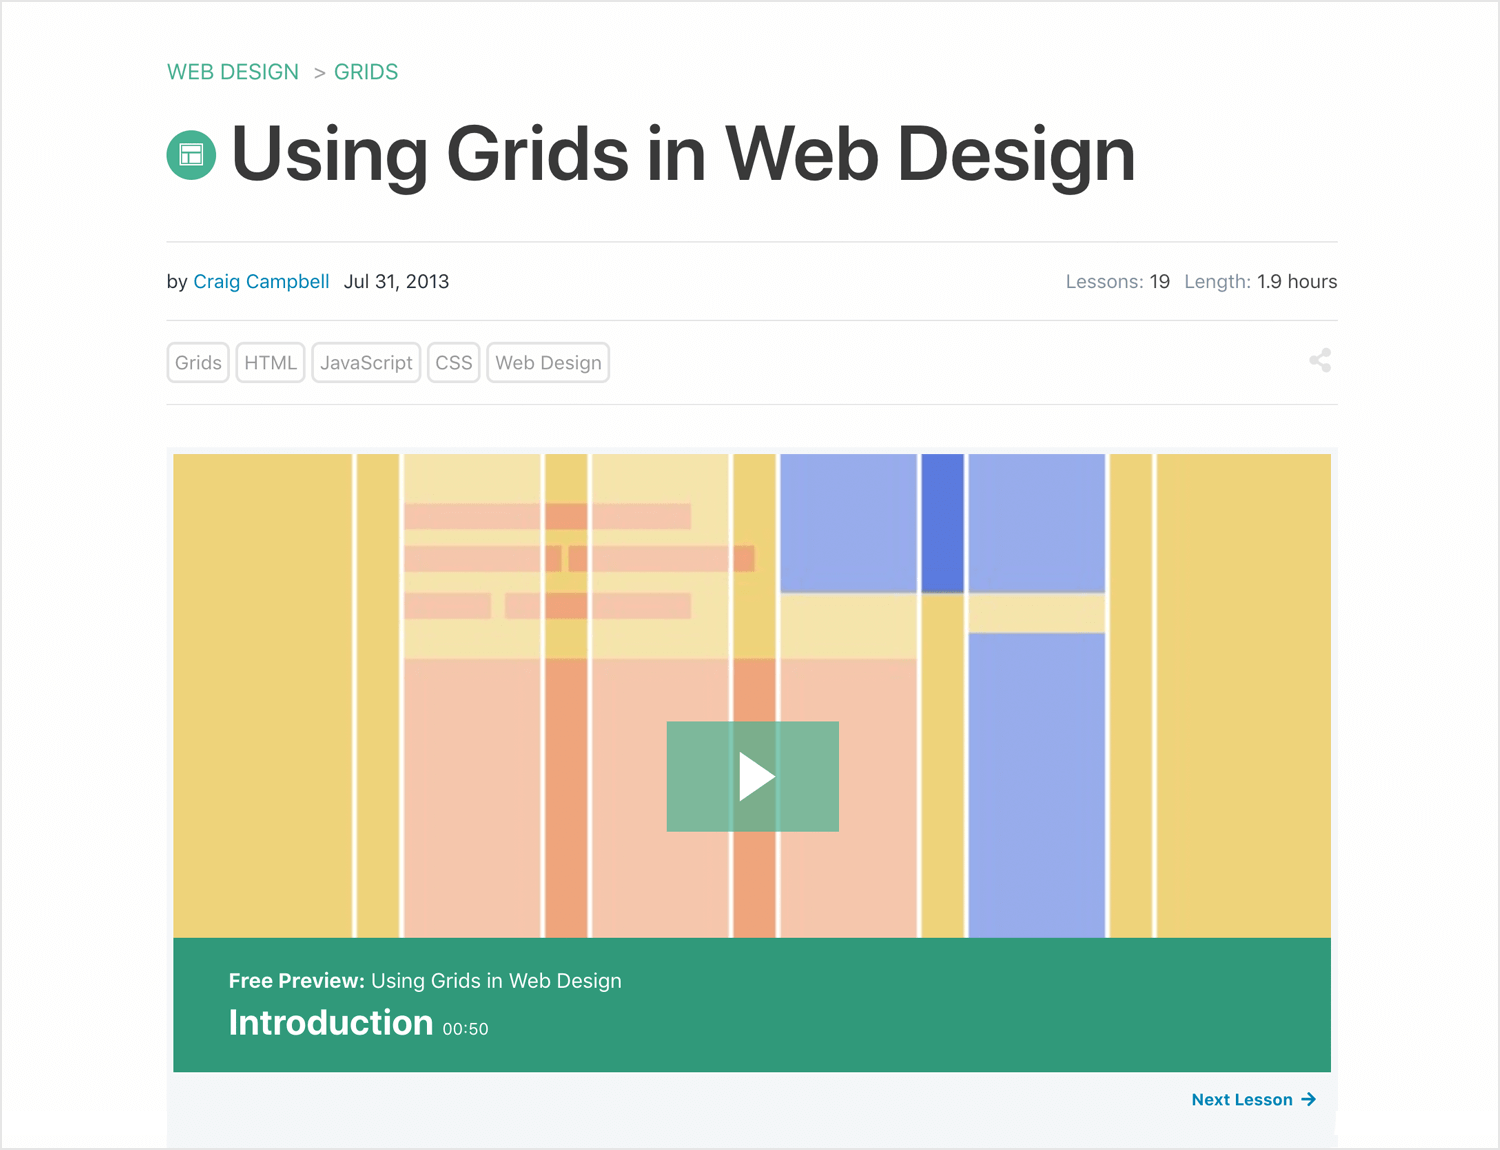 web design tutorial on how to use grids